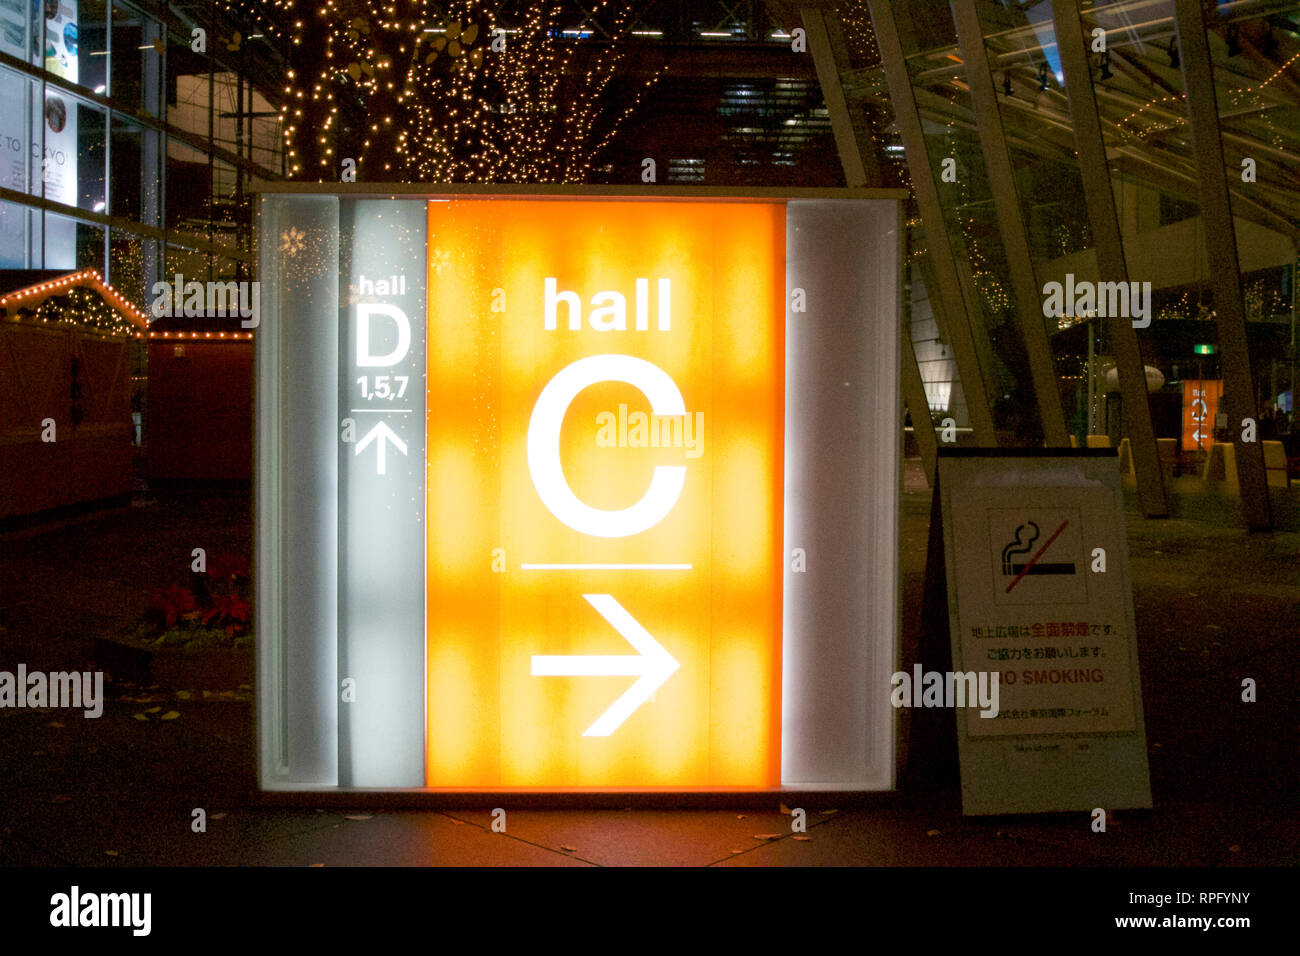 Tokyo-International forum (Kokusai Foramu) Hall C indication - Stock Image